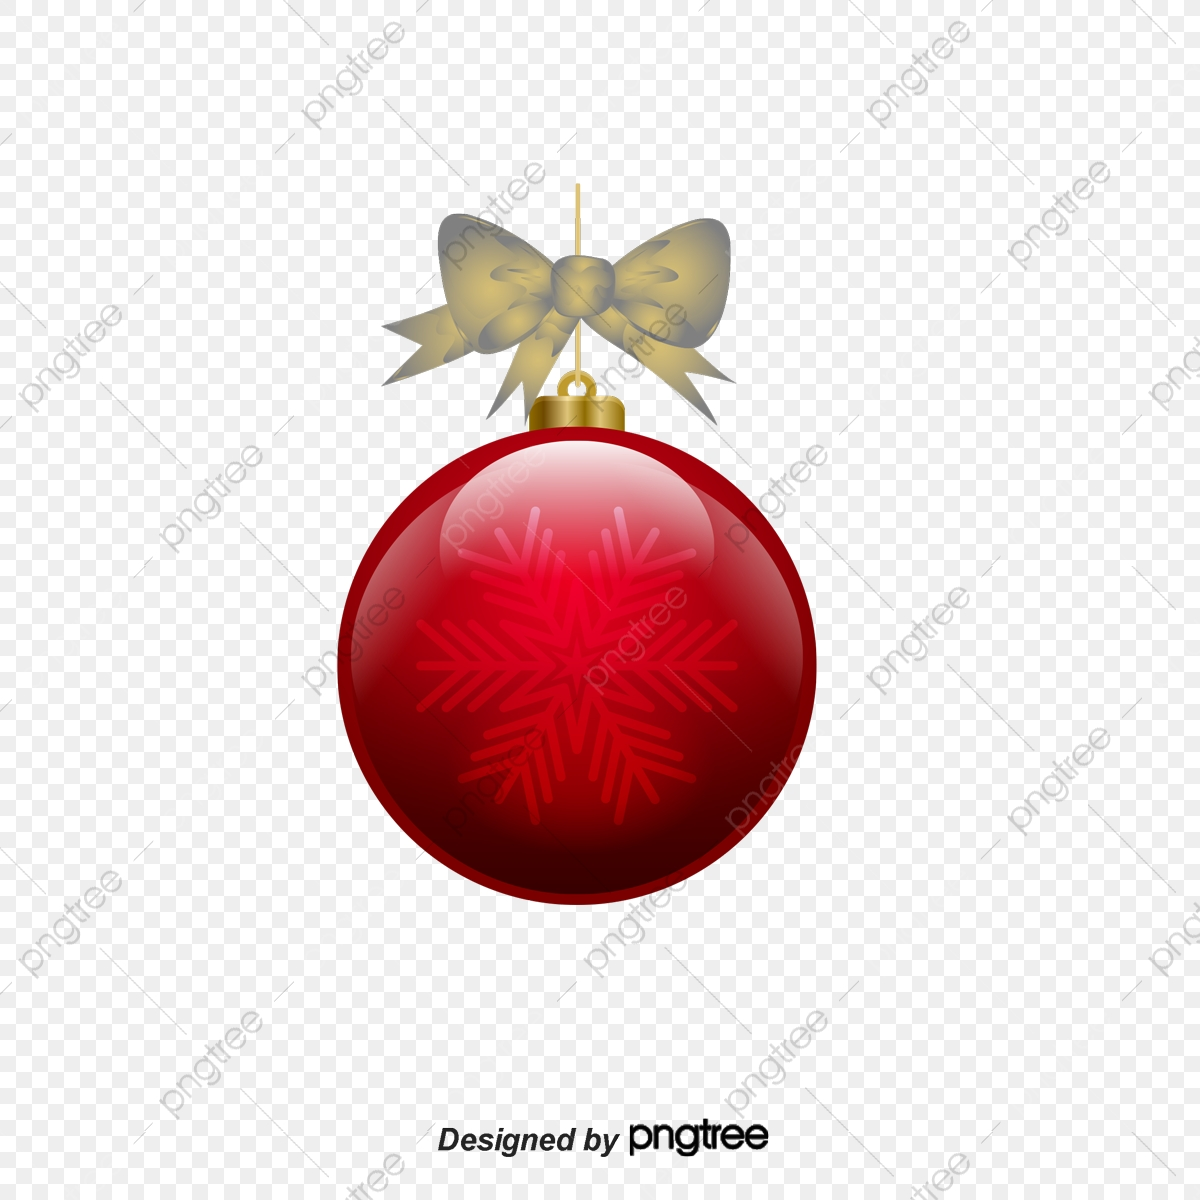 Ornaments clipart bow clipart. Red christmas ornament decorative